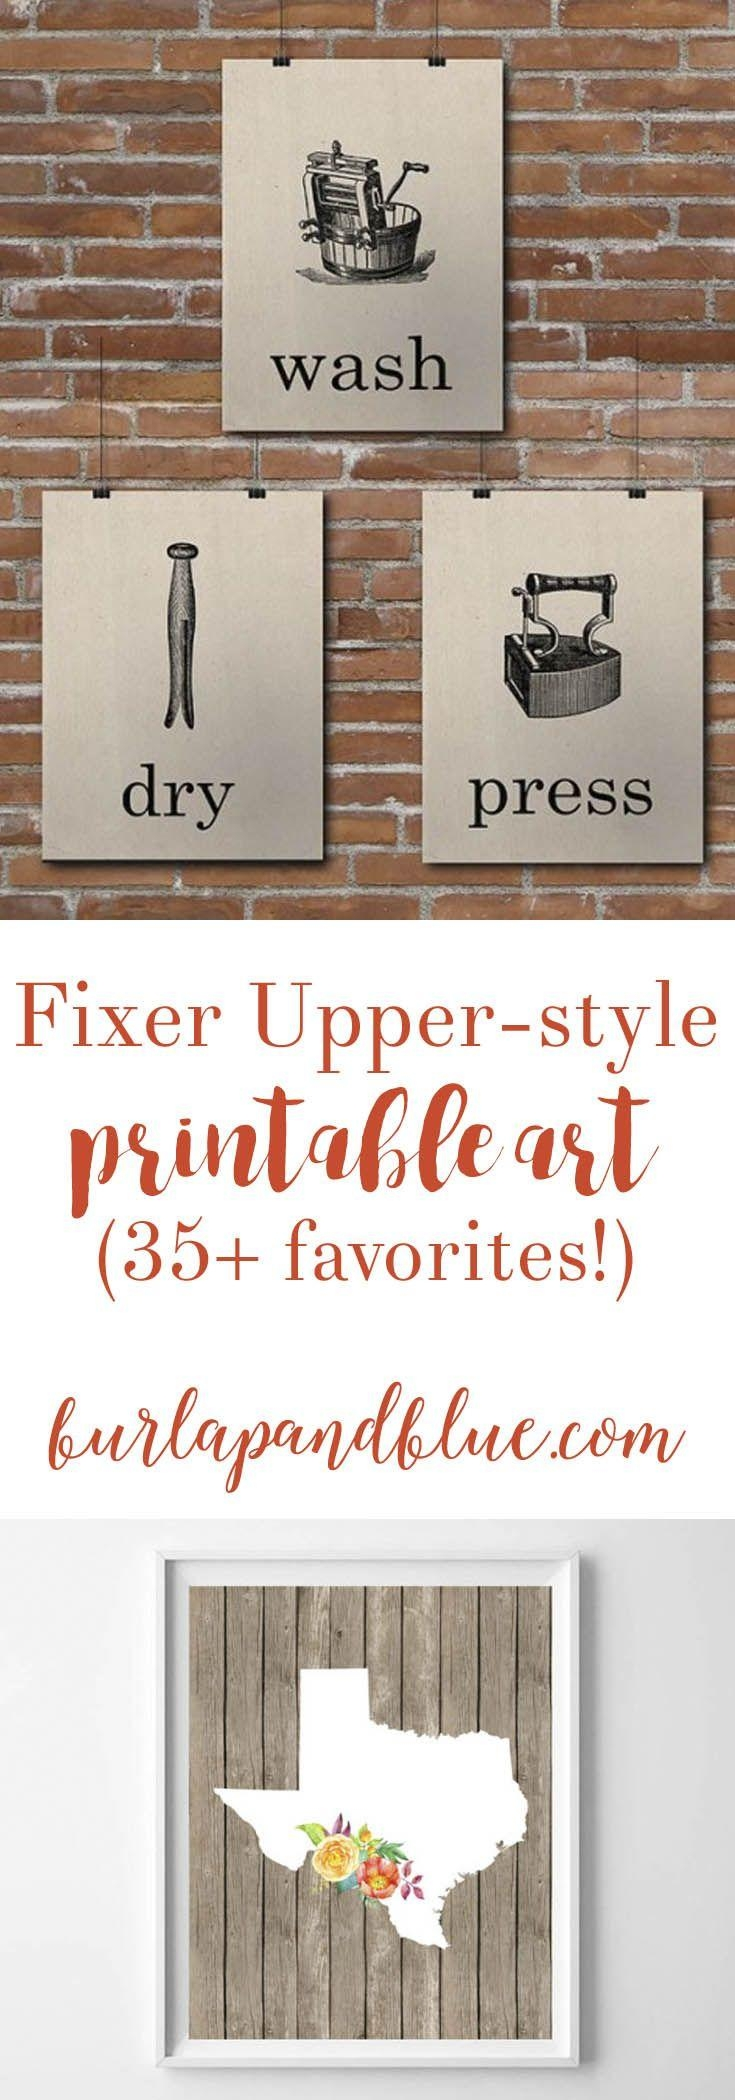 Best 25+ Laundry Room Wall Decor Ideas Only On Pinterest | Laundry Inside Laundry Room Wall Art Decors (View 10 of 20)